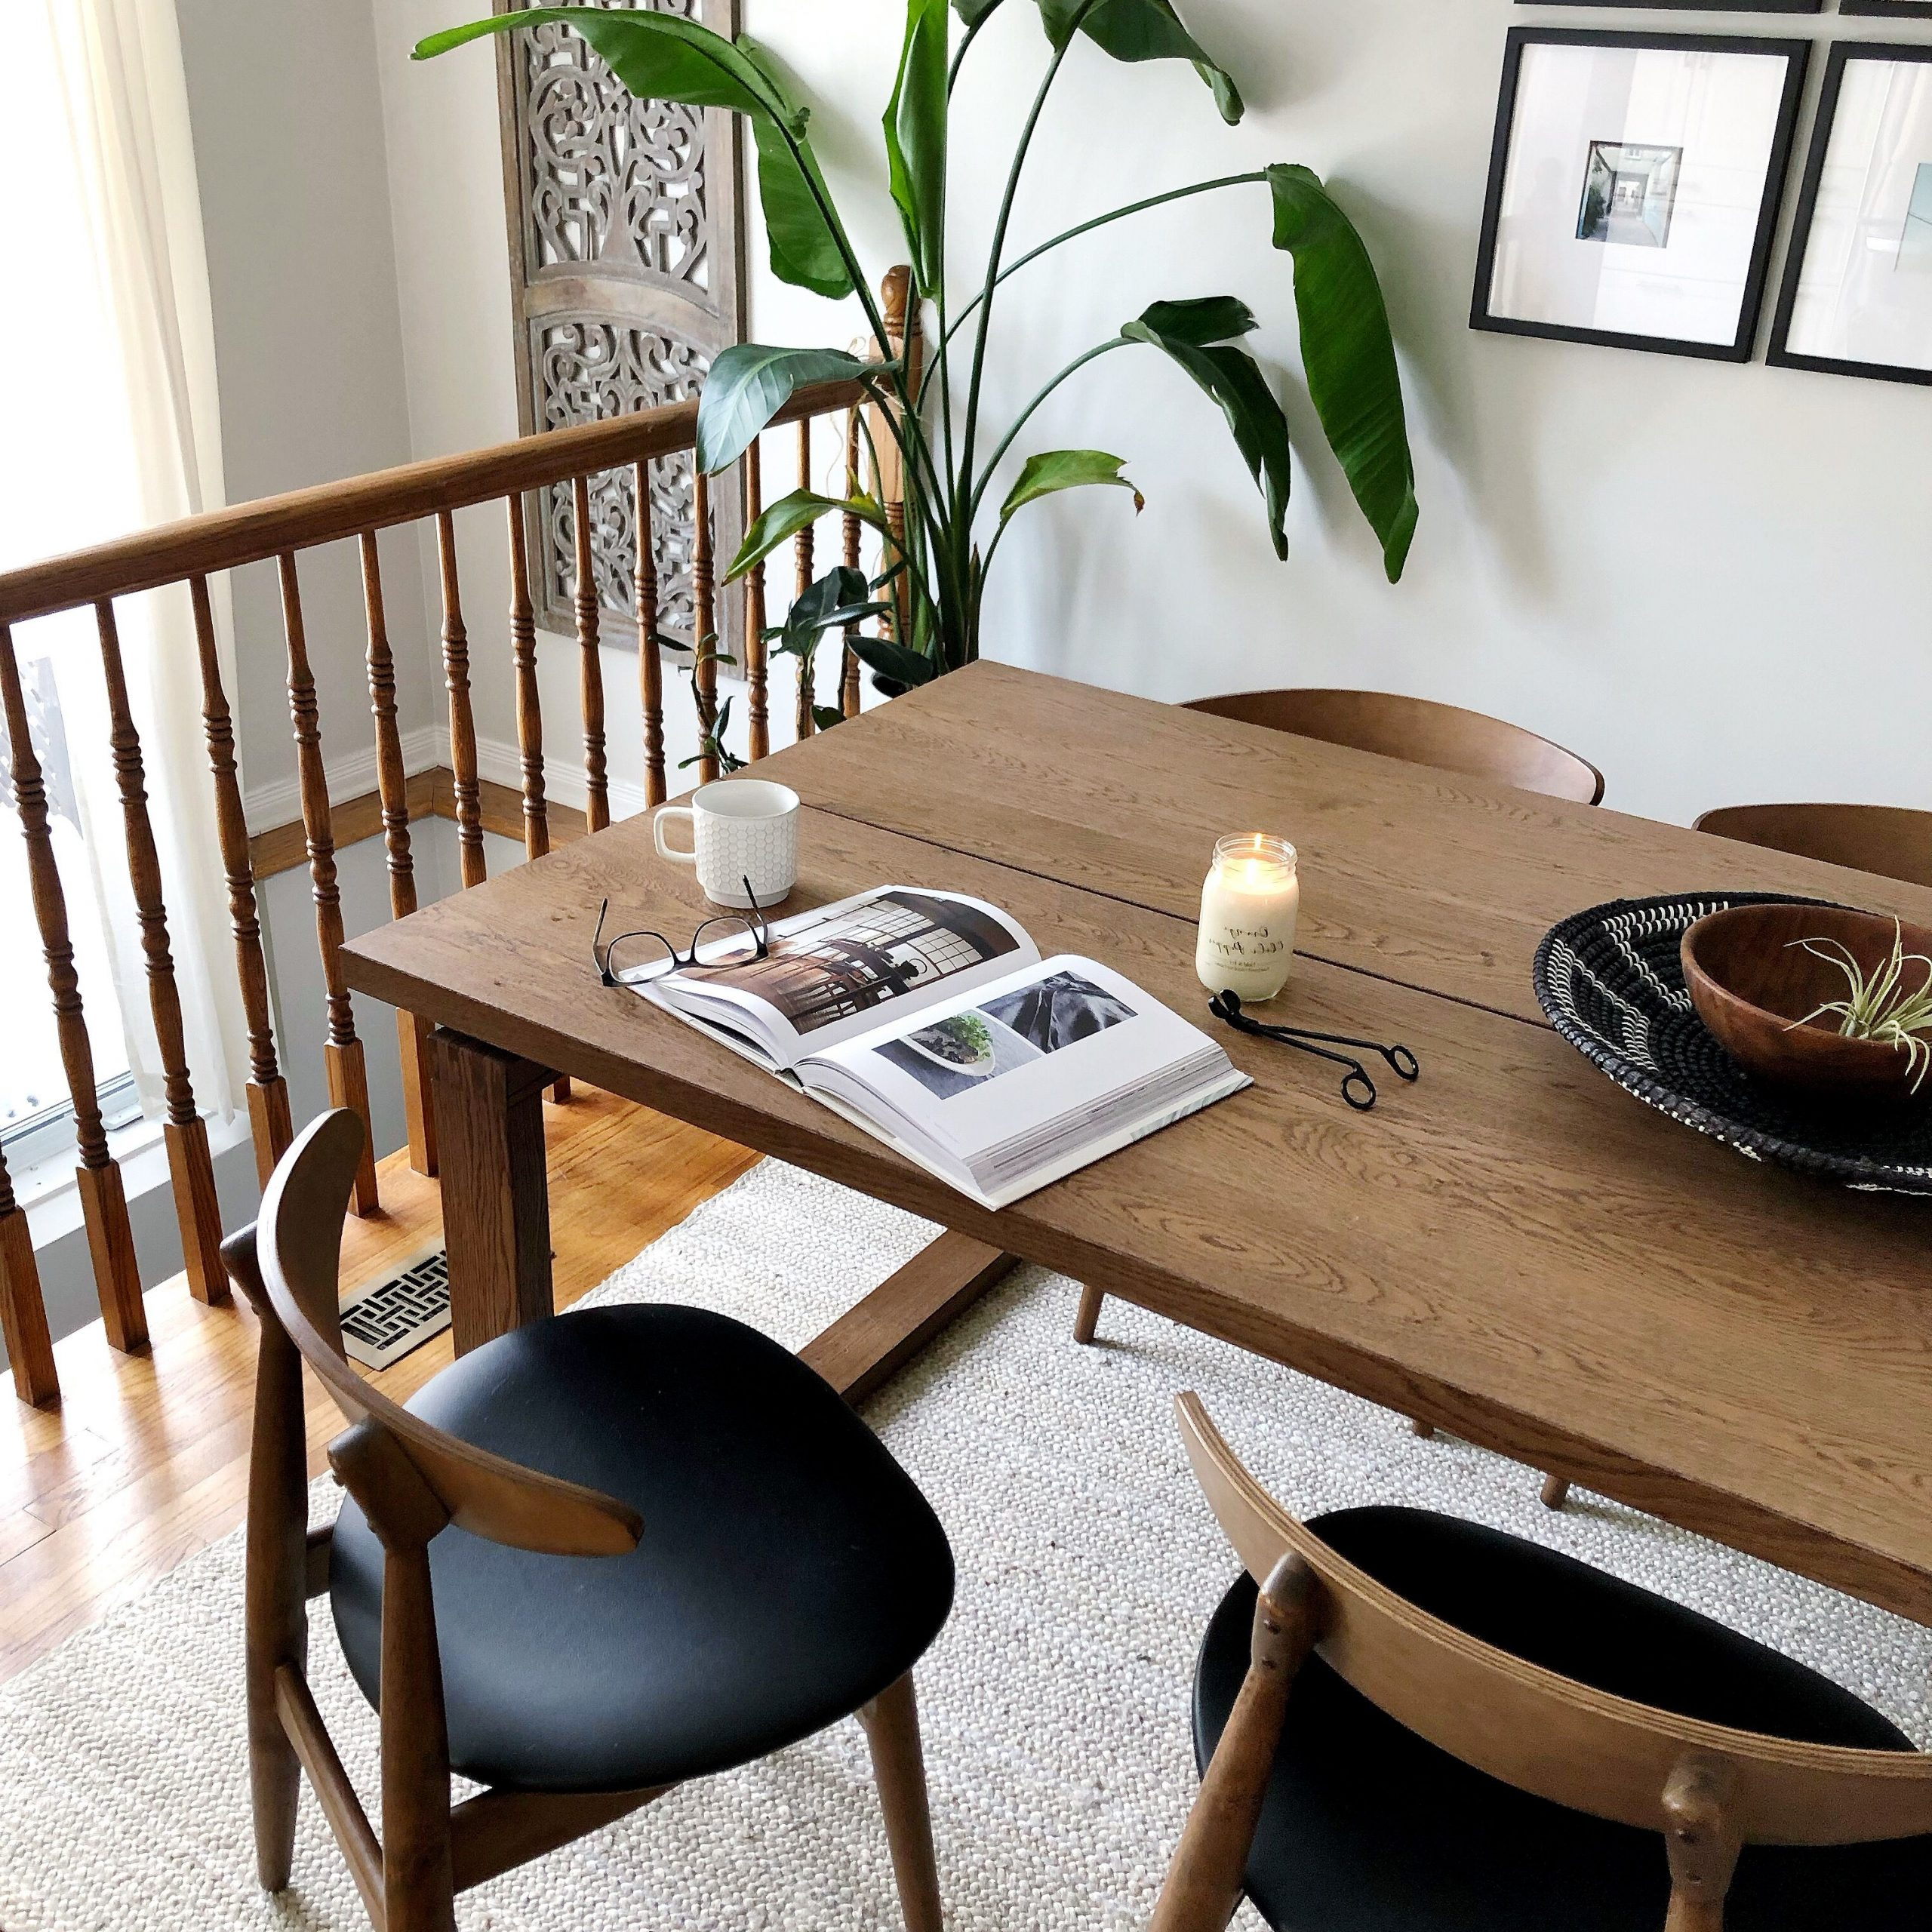 Newest Mid Century Inspired Dining Room, Ikea Morbylanga Table Pertaining To Rustic Mid Century Modern 6 Seating Dining Tables In White And Natural Wood (View 21 of 25)